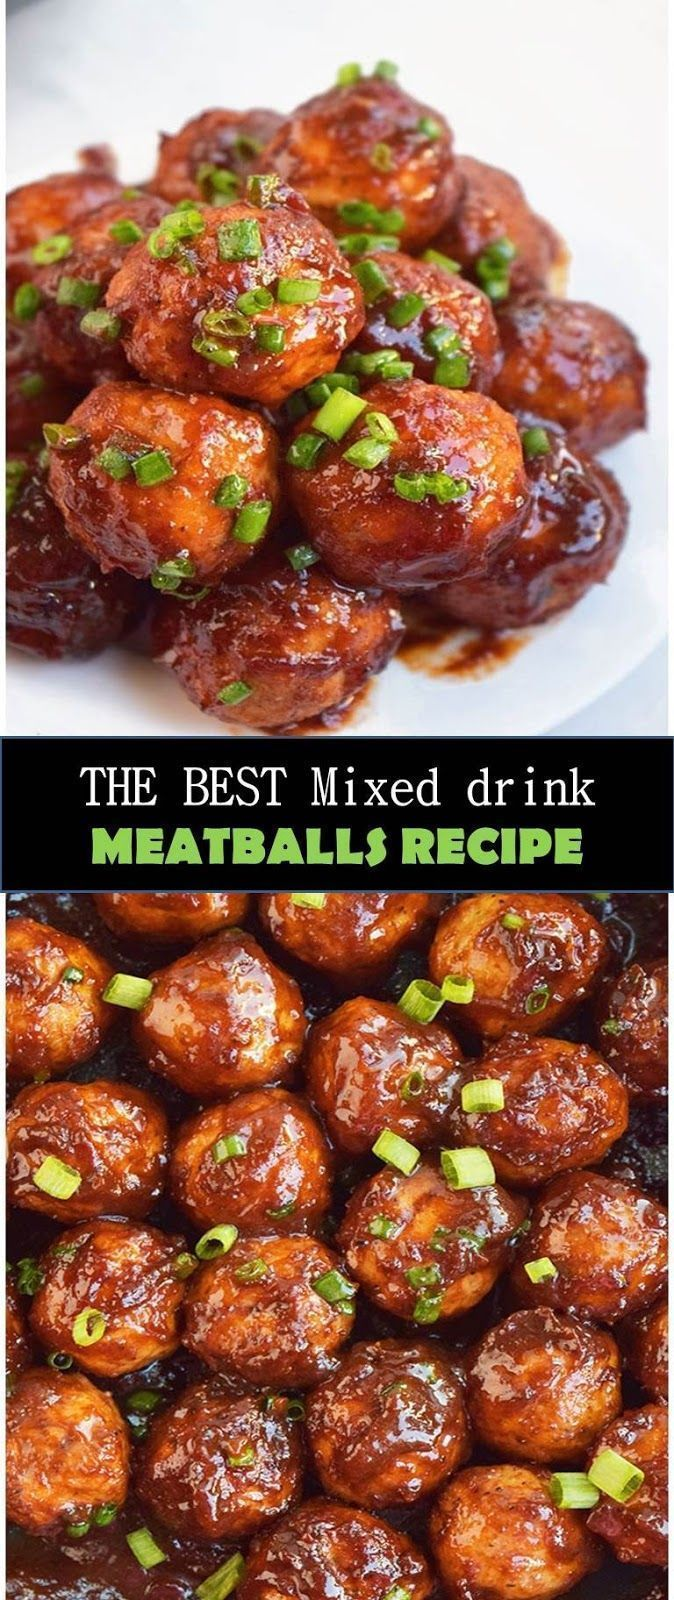 Delicious and healthy family choice special food #Mixed #drink #MEATBALLS #RECIPE (PARTY MEATBALLS) Snappy and simple mixed drink meatba... #simplemixeddrinks Delicious and healthy family choice special food #Mixed #drink #MEATBALLS #RECIPE (PARTY MEATBALLS) Snappy and simple mixed drink meatba... #simplemixeddrinks Delicious and healthy family choice special food #Mixed #drink #MEATBALLS #RECIPE (PARTY MEATBALLS) Snappy and simple mixed drink meatba... #simplemixeddrinks Delicious and hea #simplemixeddrinks